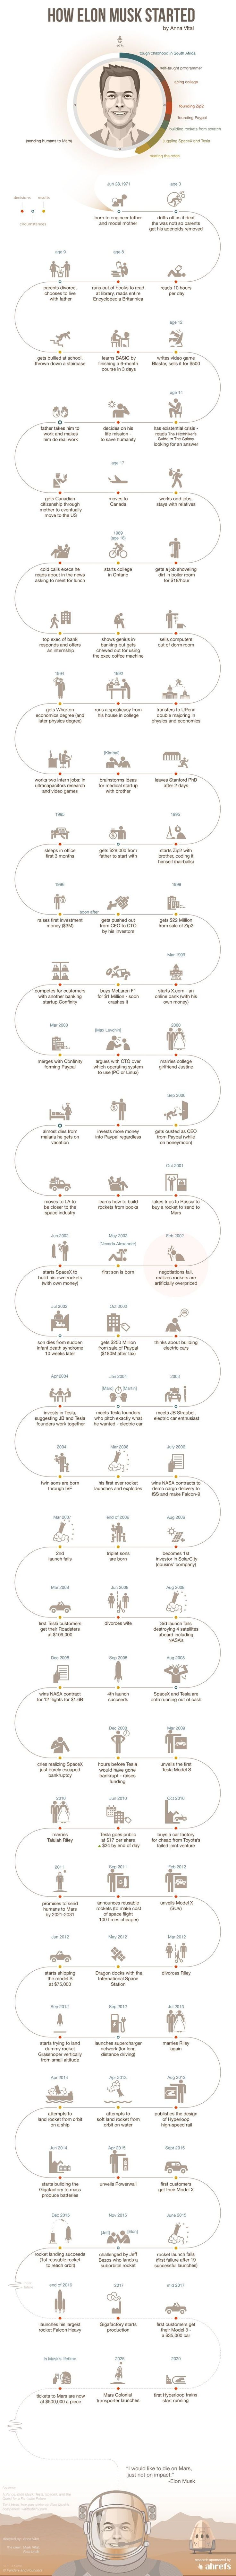 How did Elon Musk become the visionary he is today? This infographic shows the entrepreneur's fascinating path. @elonmusk #startup #onlinebusiness #followback #entrepreneur #startup #onlinebusiness #followback